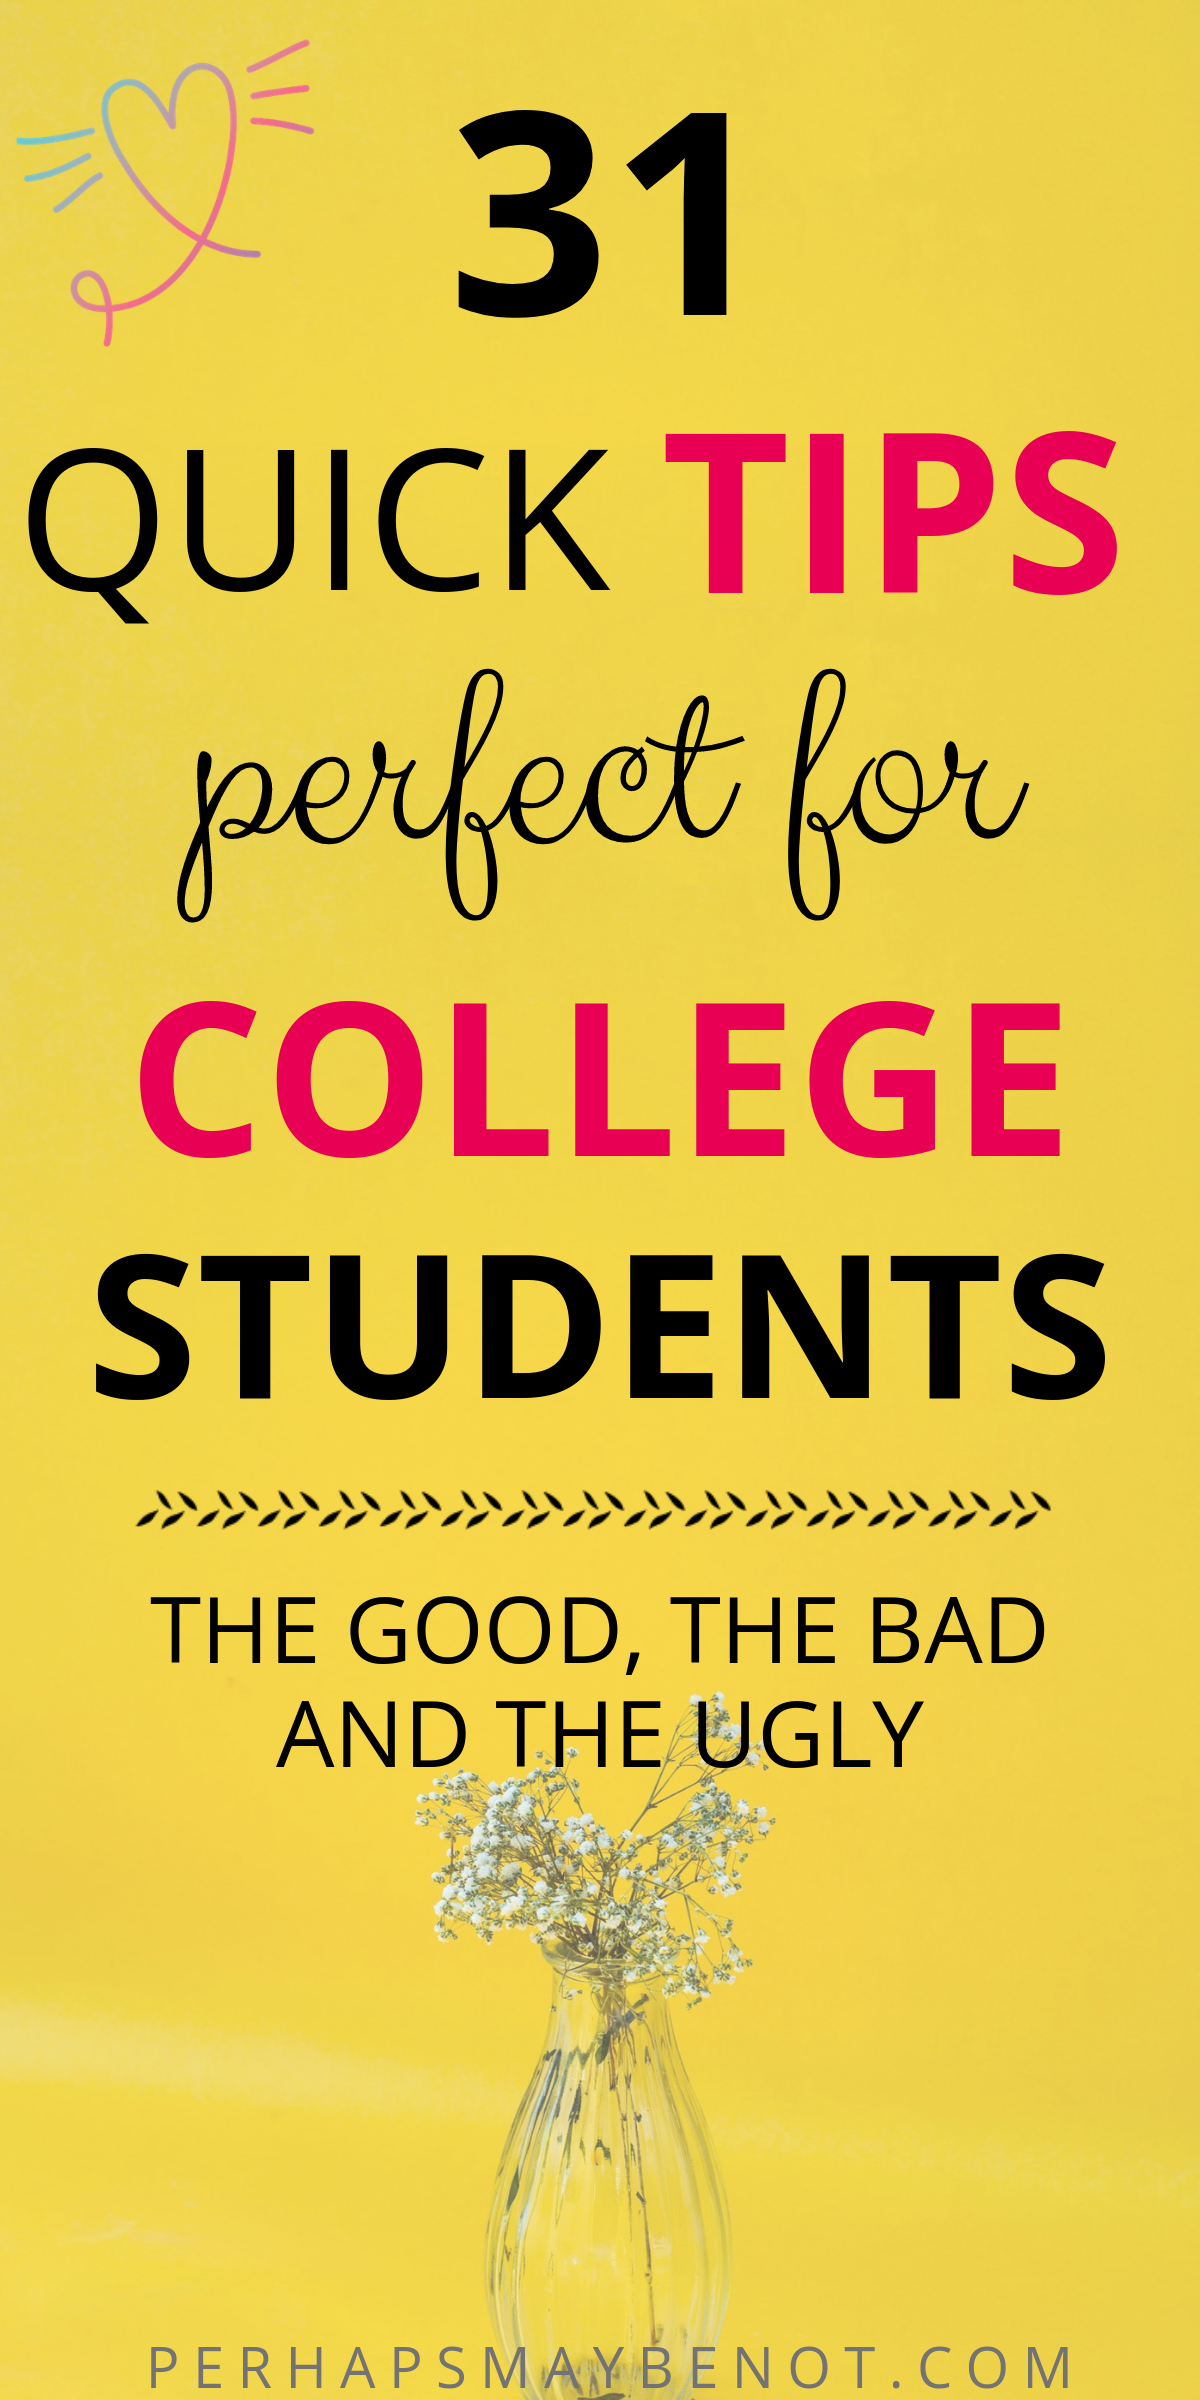 31 Quick College Tips From A College Student Here are 31 things I have learned since starting college two years ago. Oh college life, how I (dis)like you...hope everyone finds it relatable and has a nice day!